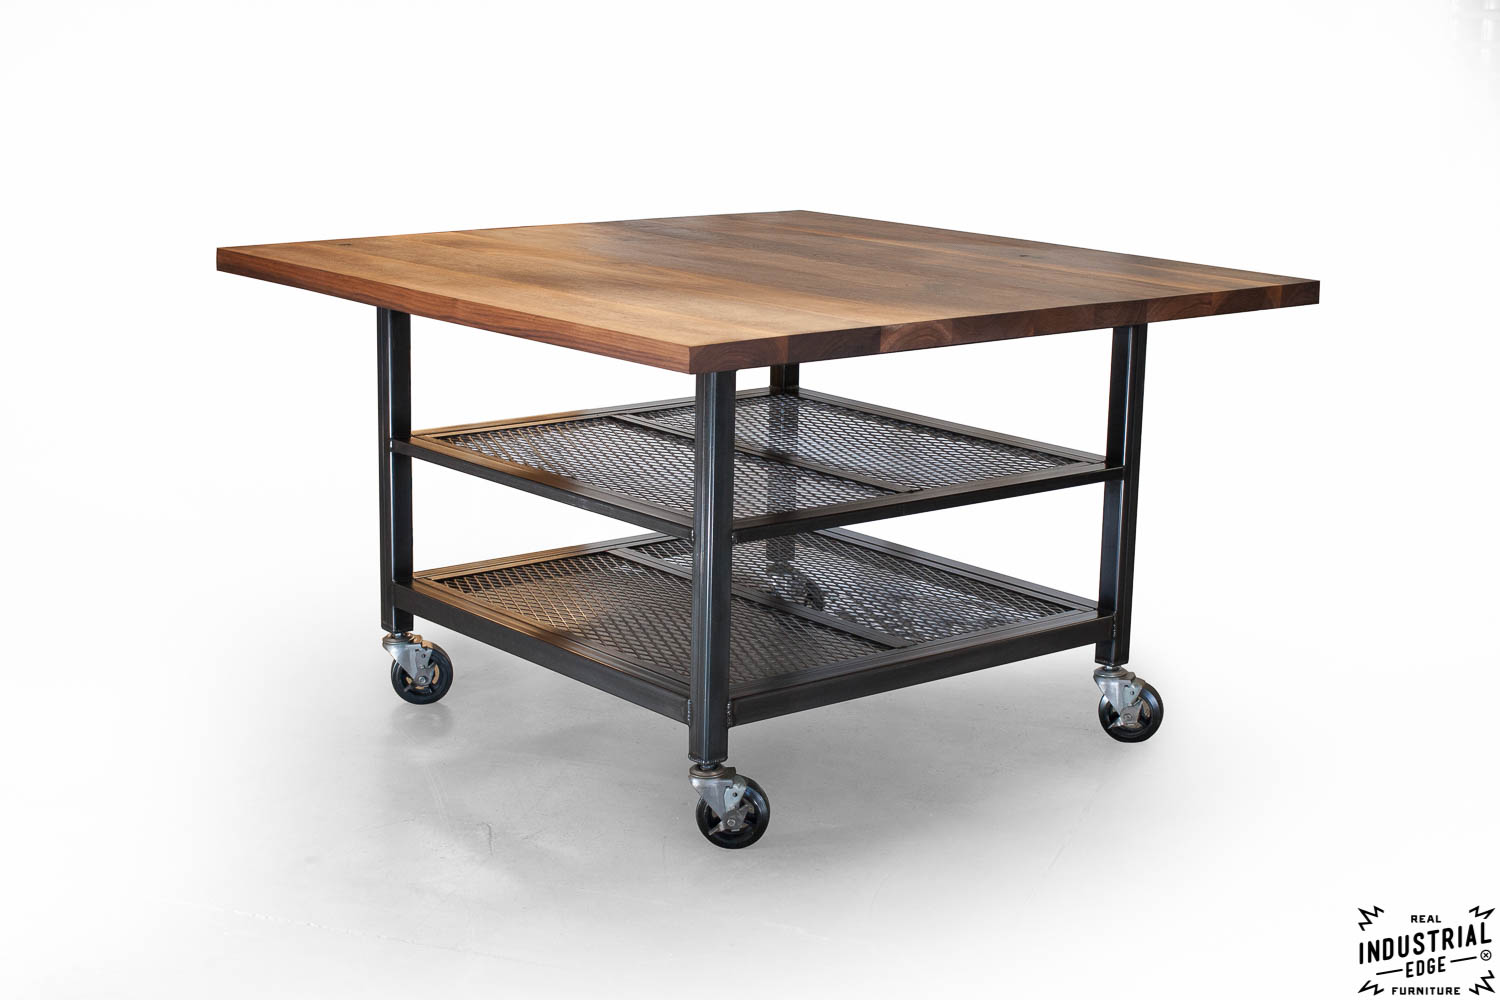 table – Real Industrial Edge Furniture | Custom, Industrial ...